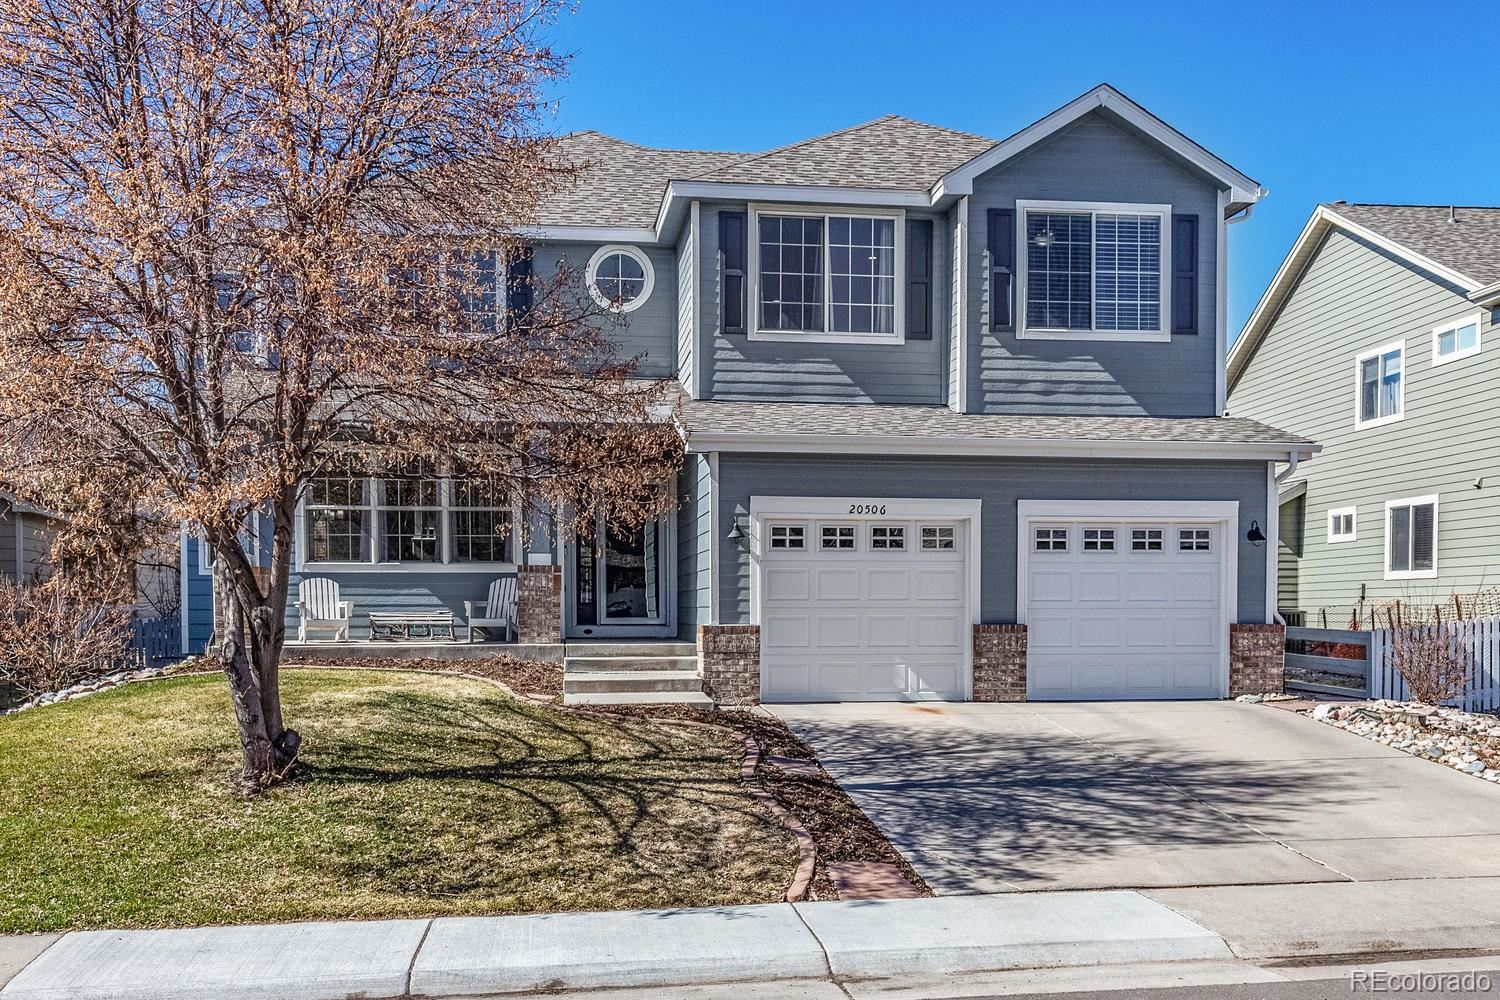 20506 E Caley Drive, Centennial, CO 80016 - #: 6651642